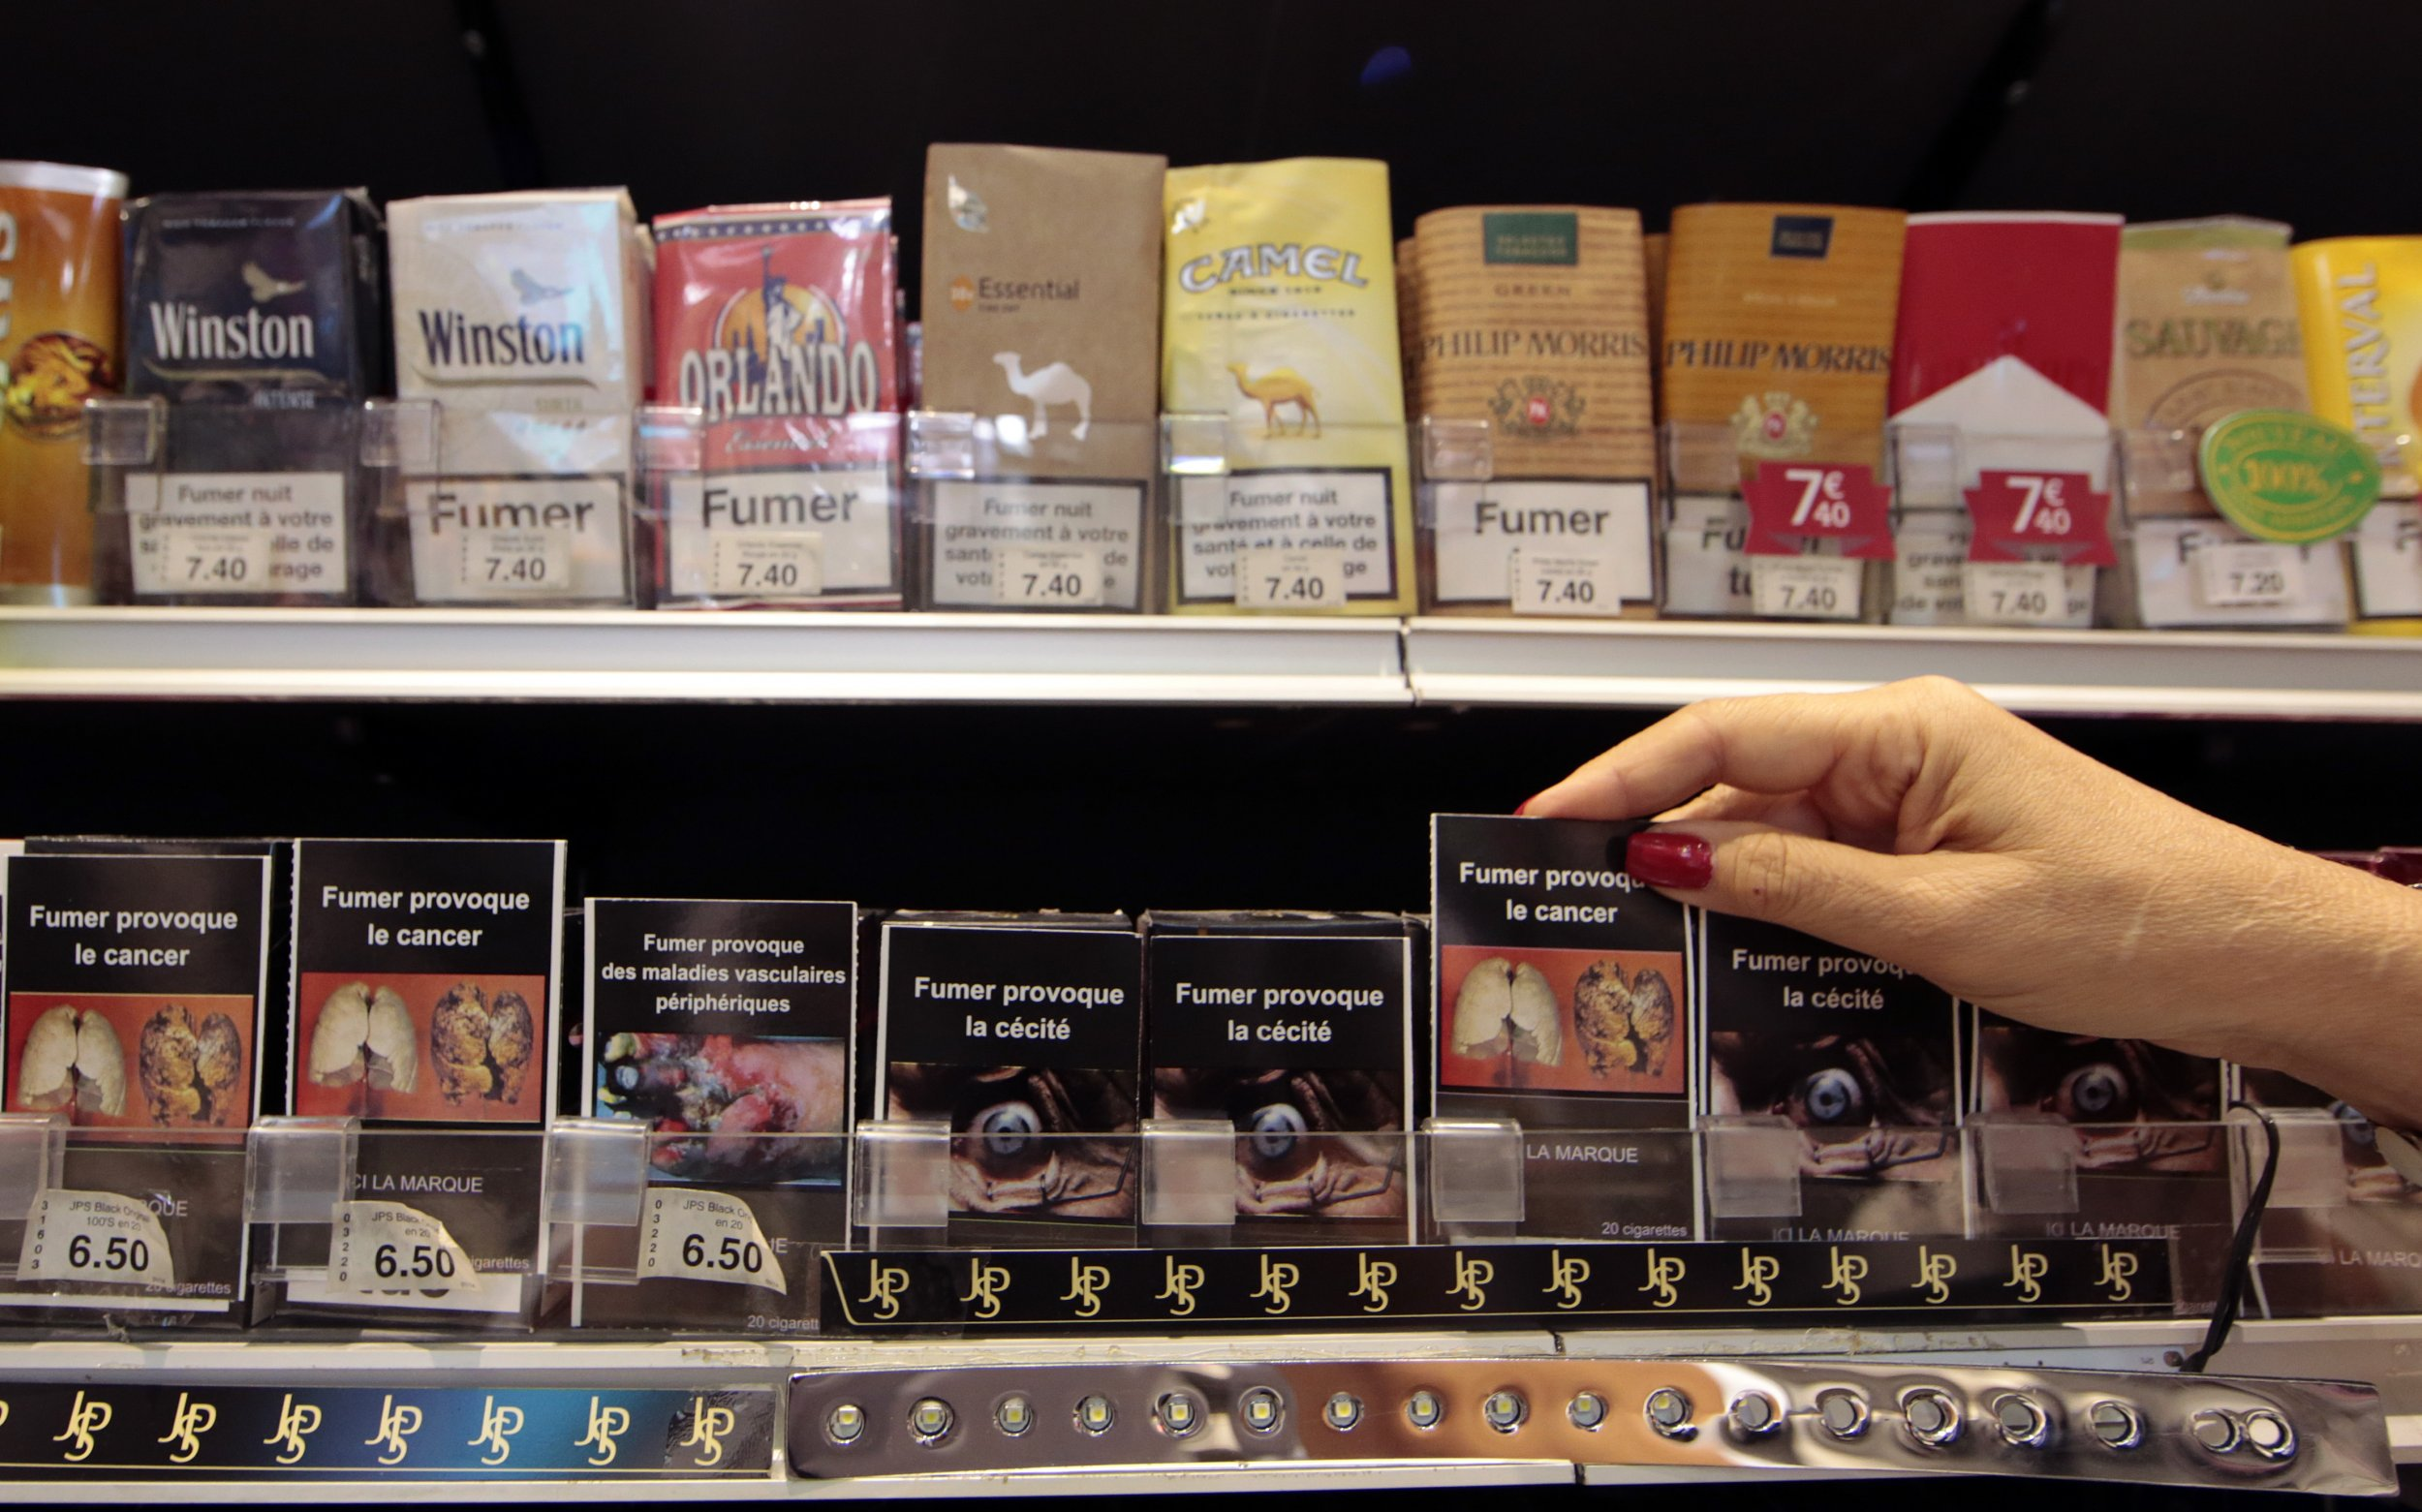 Cigarette packs